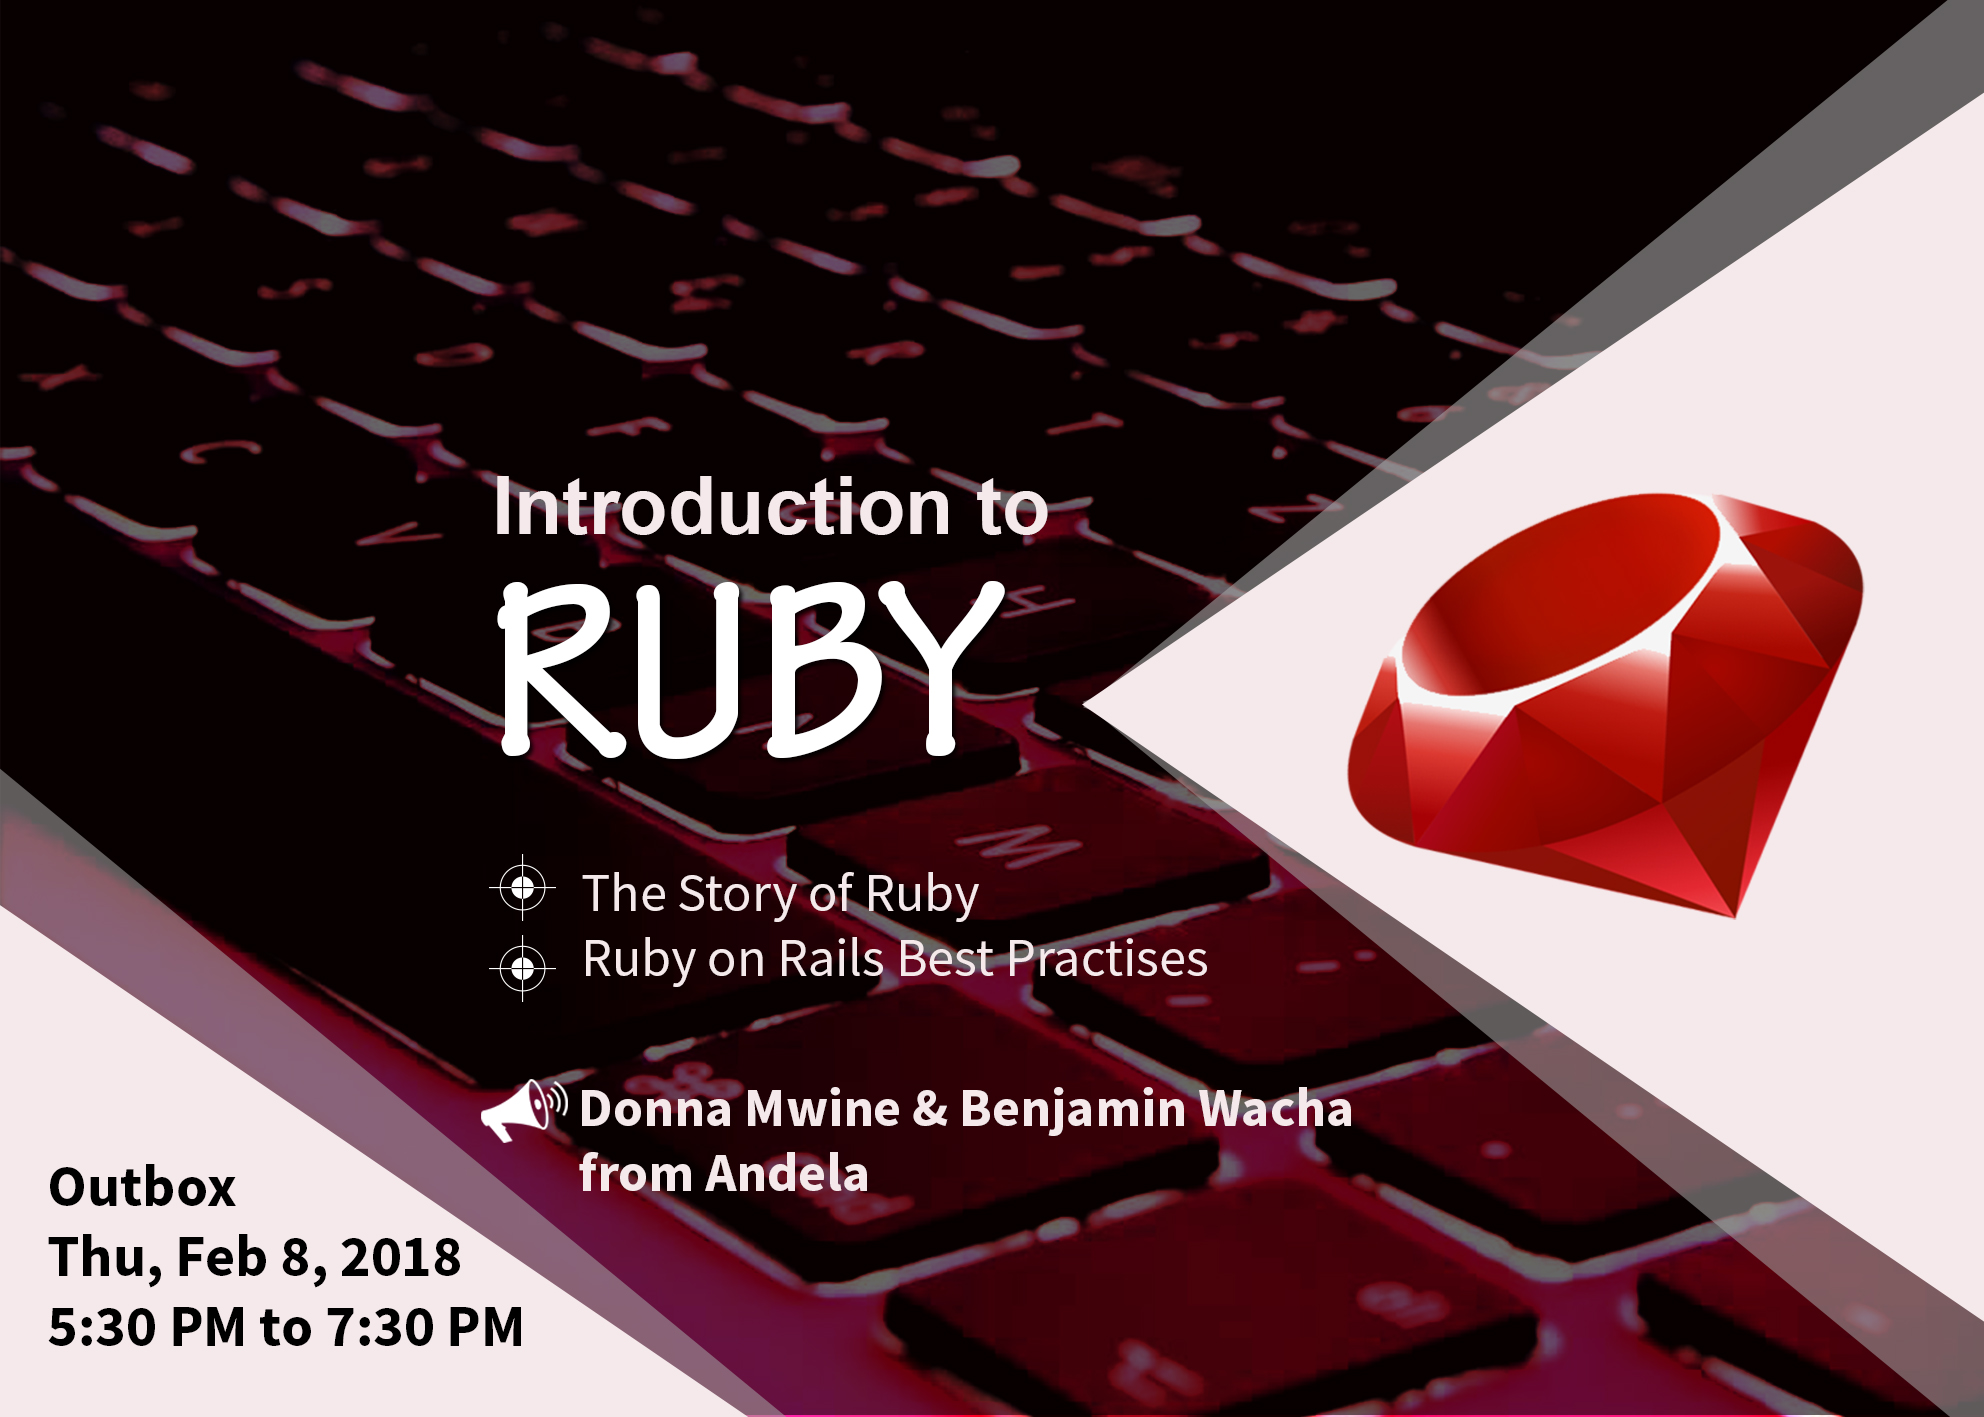 An Introduction to Ruby - The Story & Best Practices for